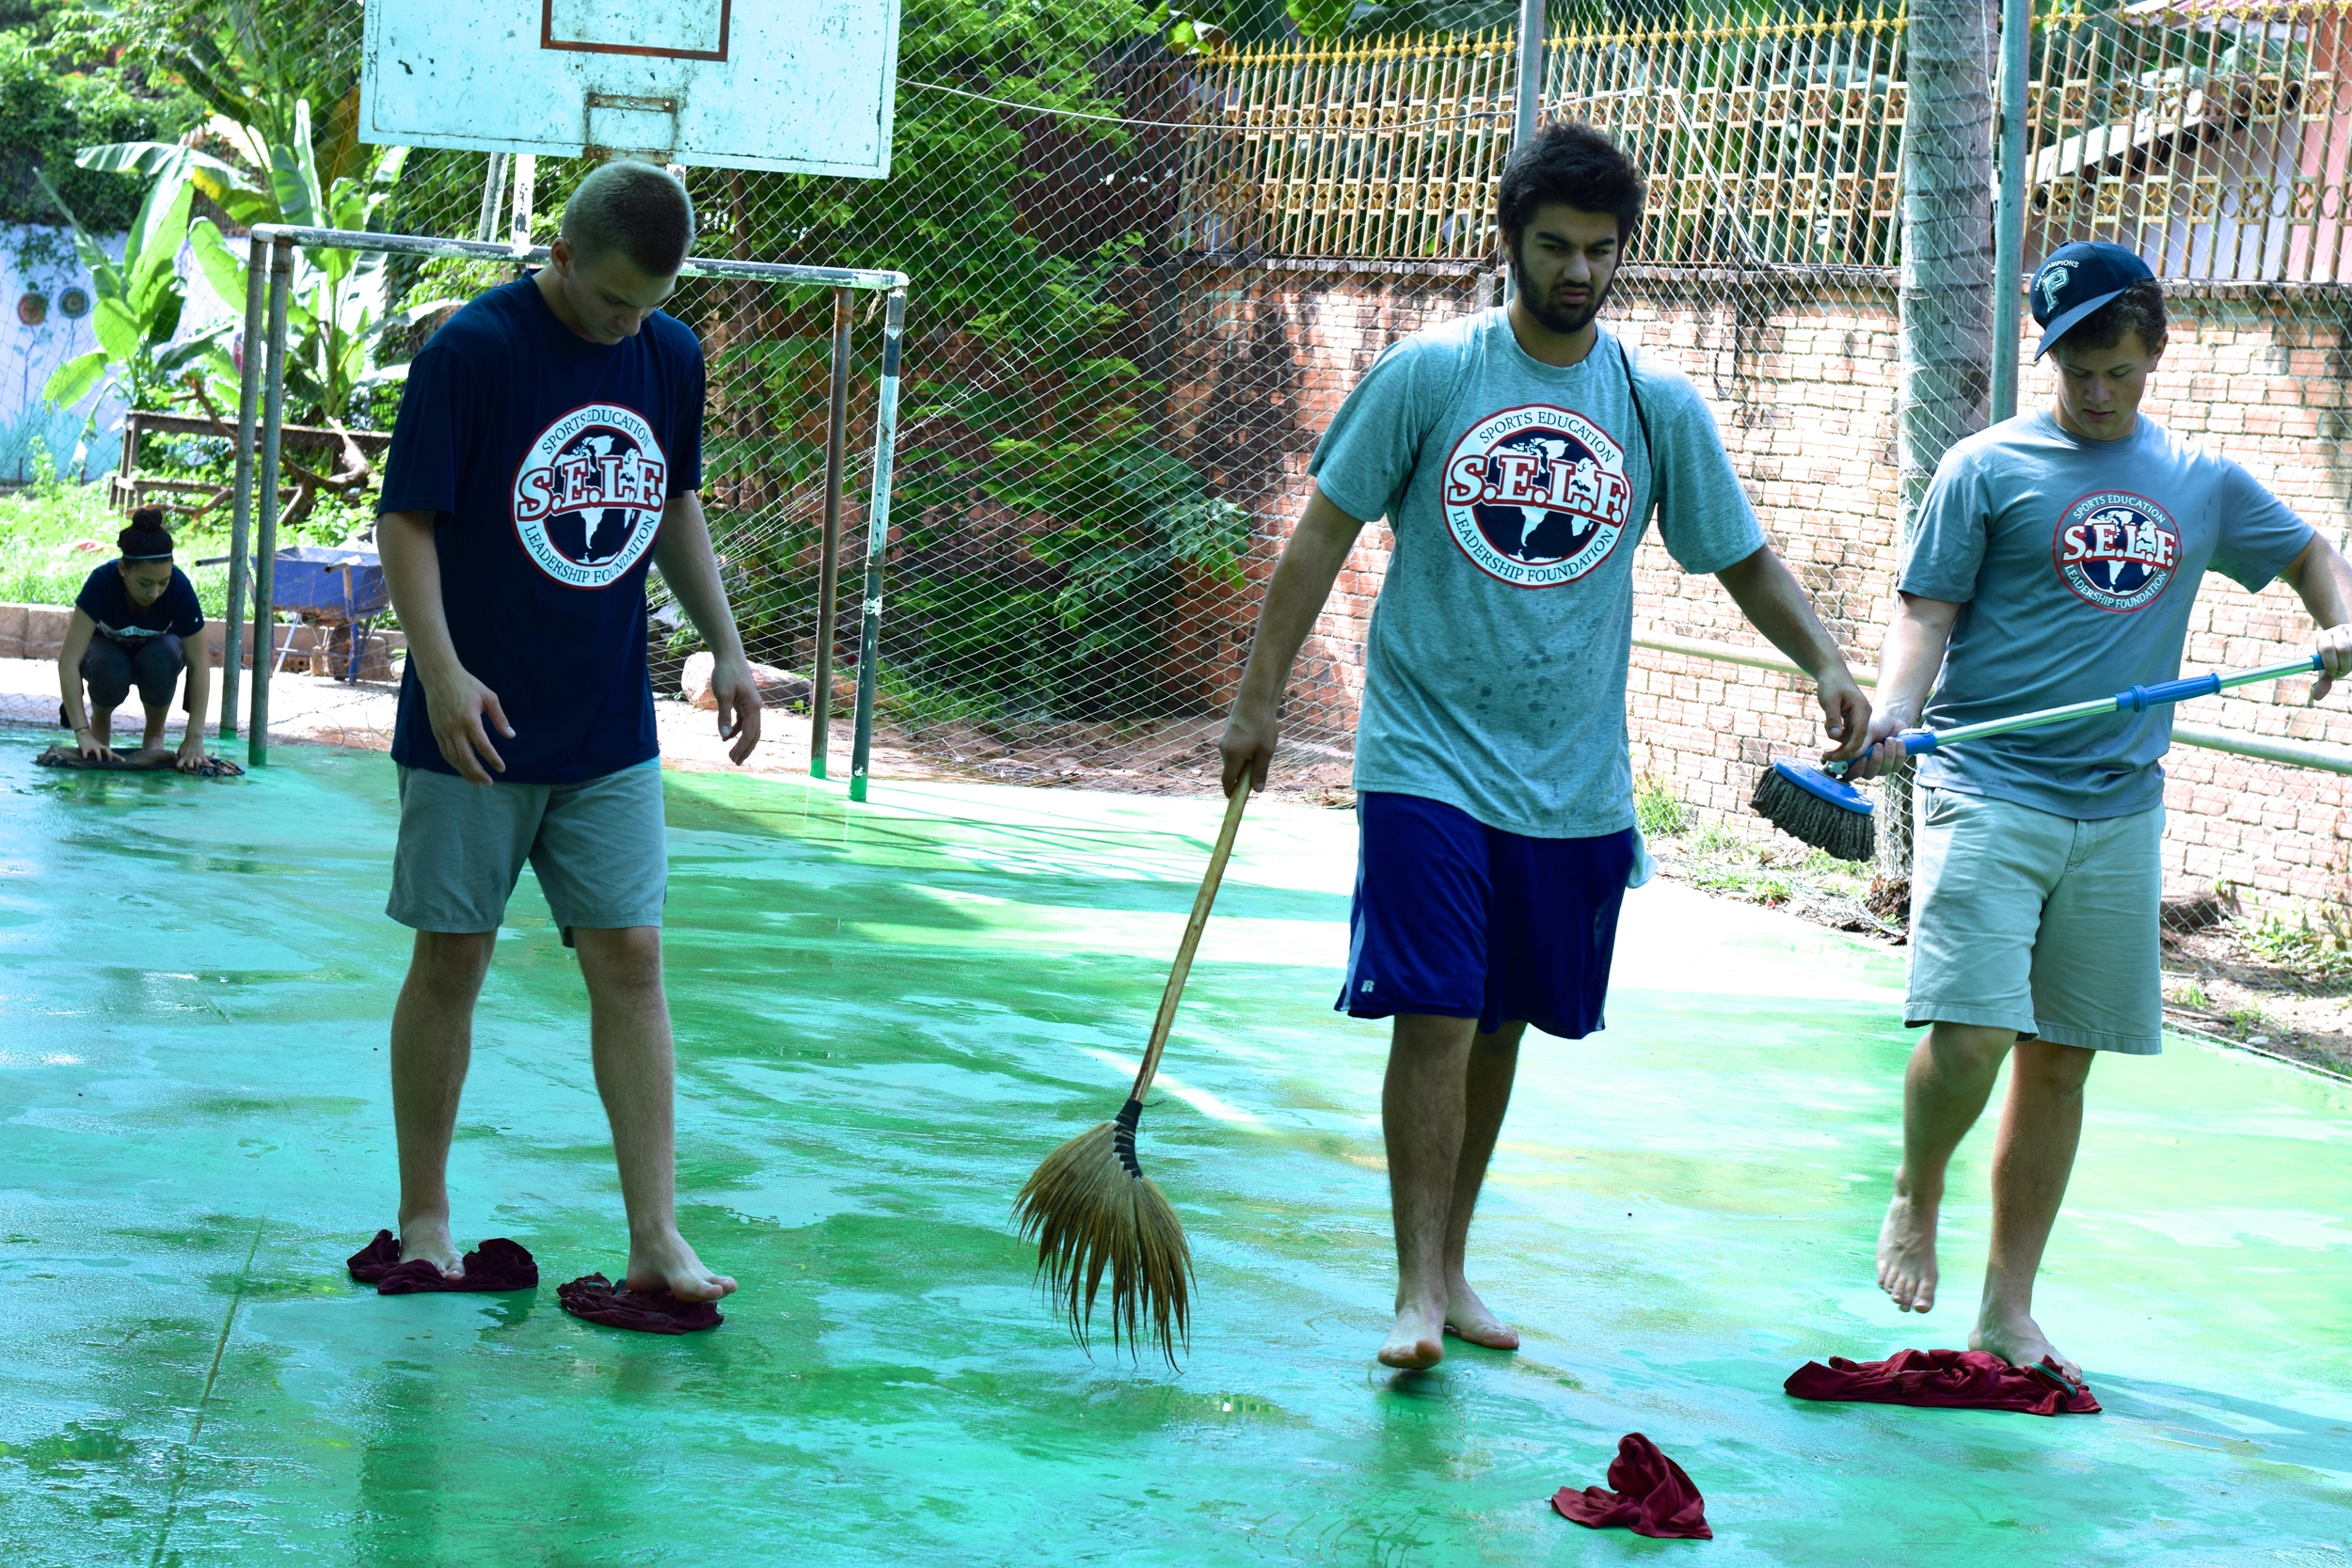 Hunter, Alisina and Matt cleaning the court